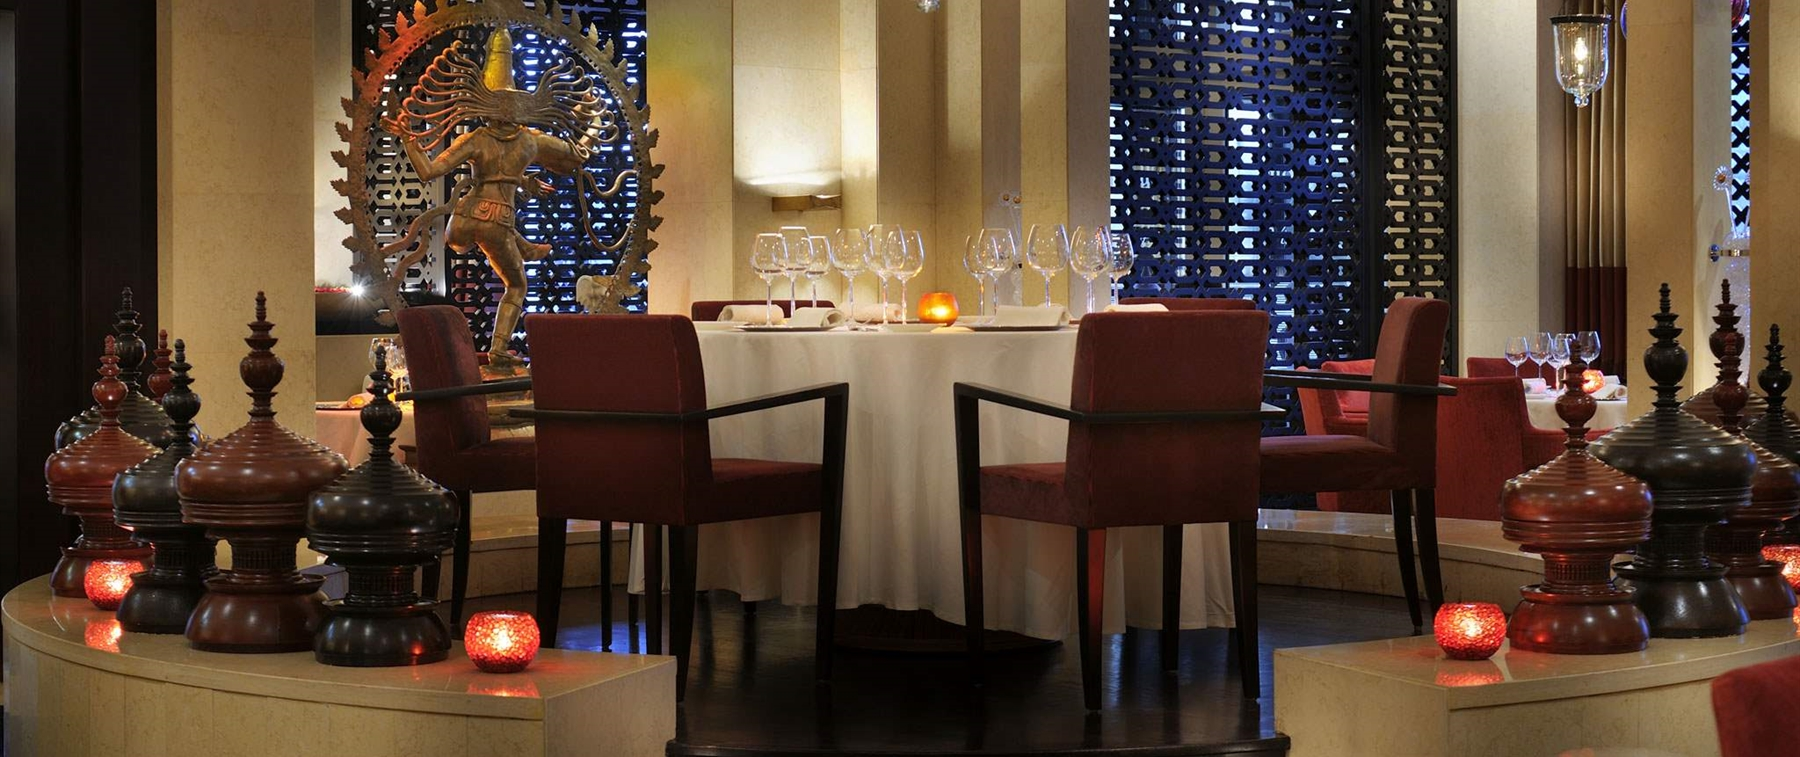 Indian Cuisine Restaurant in Dubai - Indego By Vineet